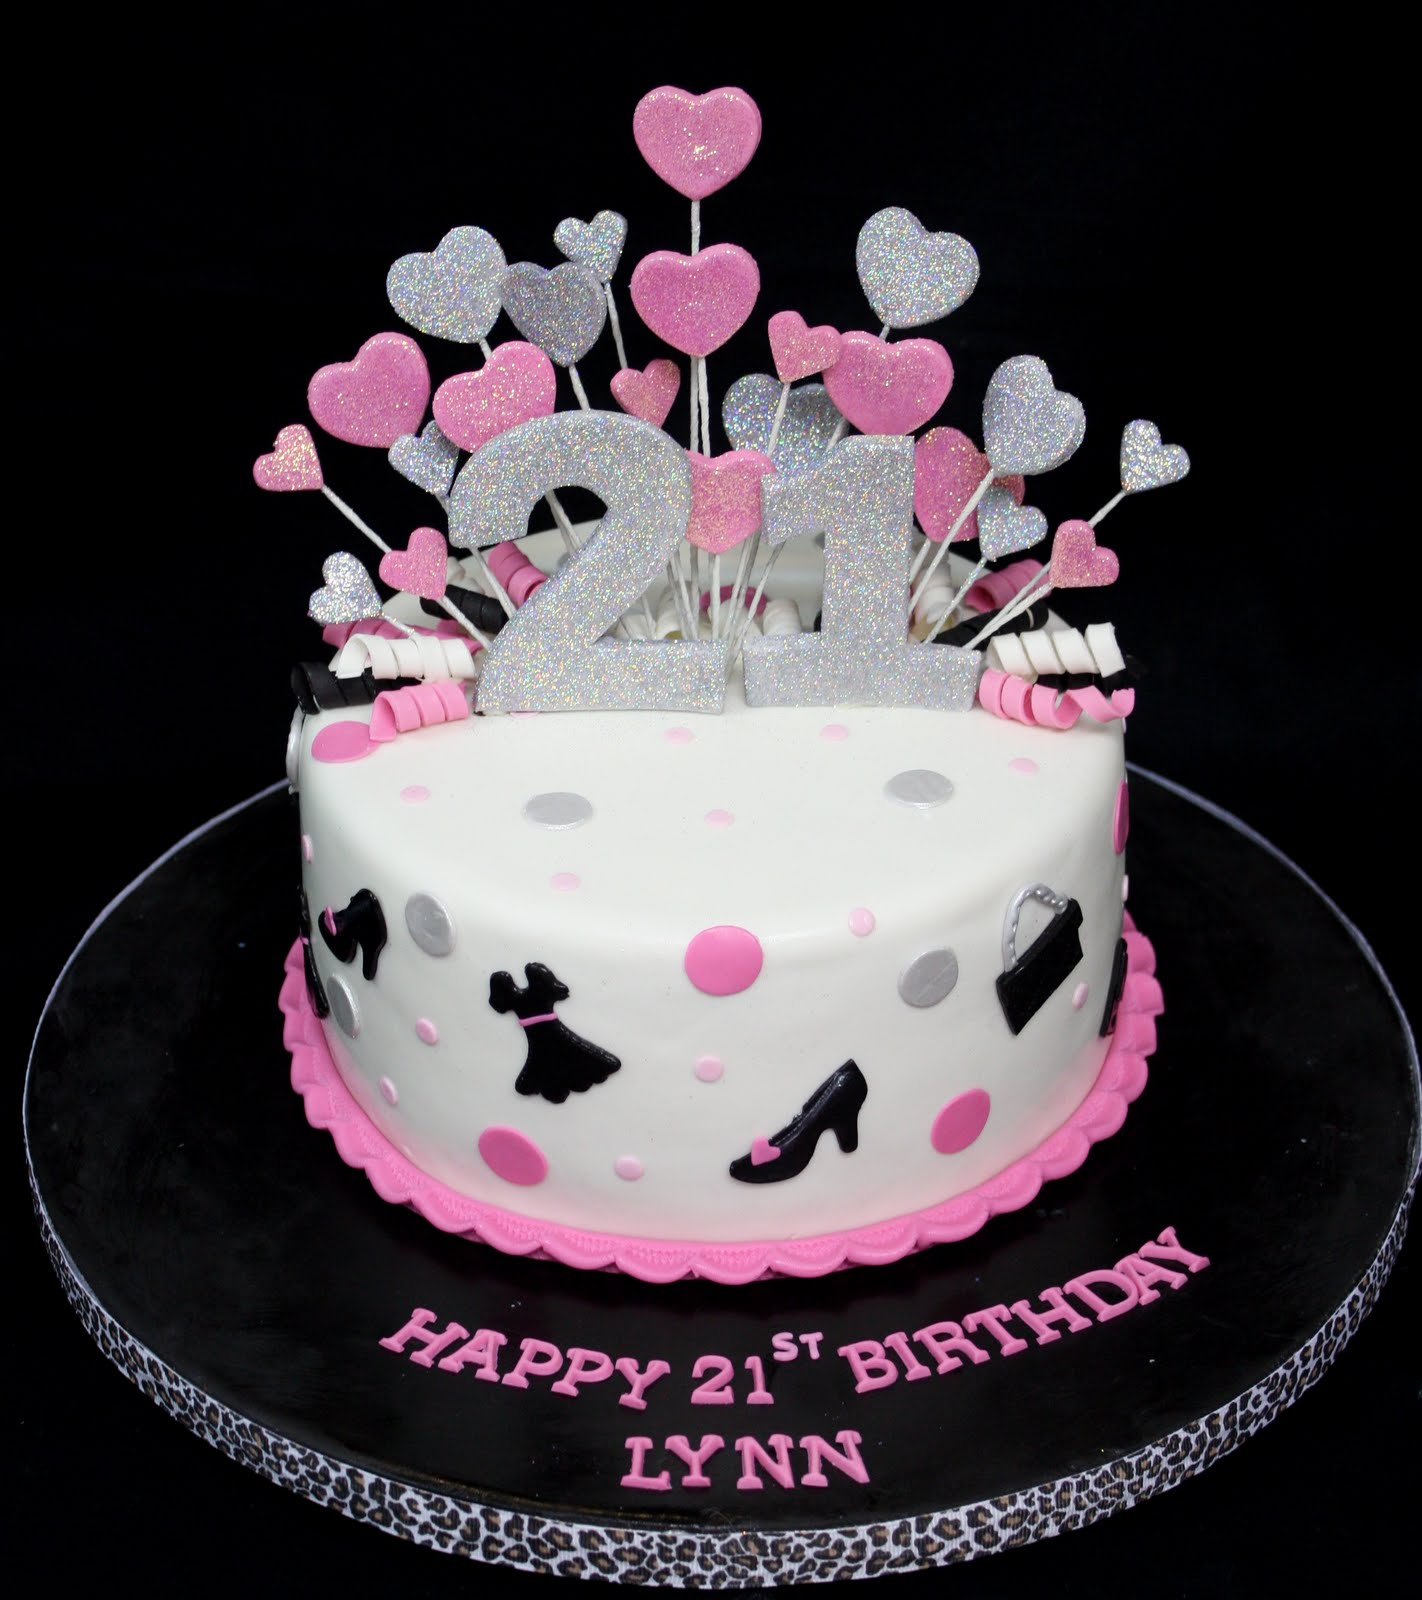 Birthday Cake For Women 21st Birthday Cakes Decoration Ideas Little Birthday Cakes